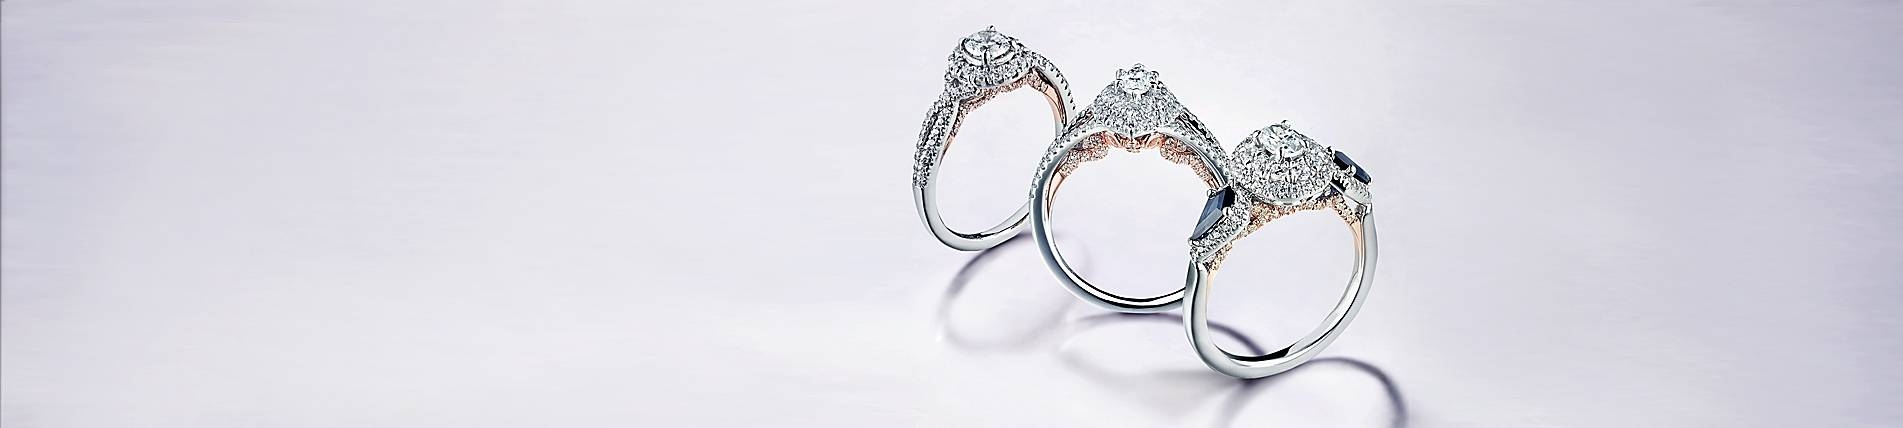 Preset Diamond Engagement Rings – Gabriel & Co. Regarding Preset Engagement Rings (Gallery 15 of 15)